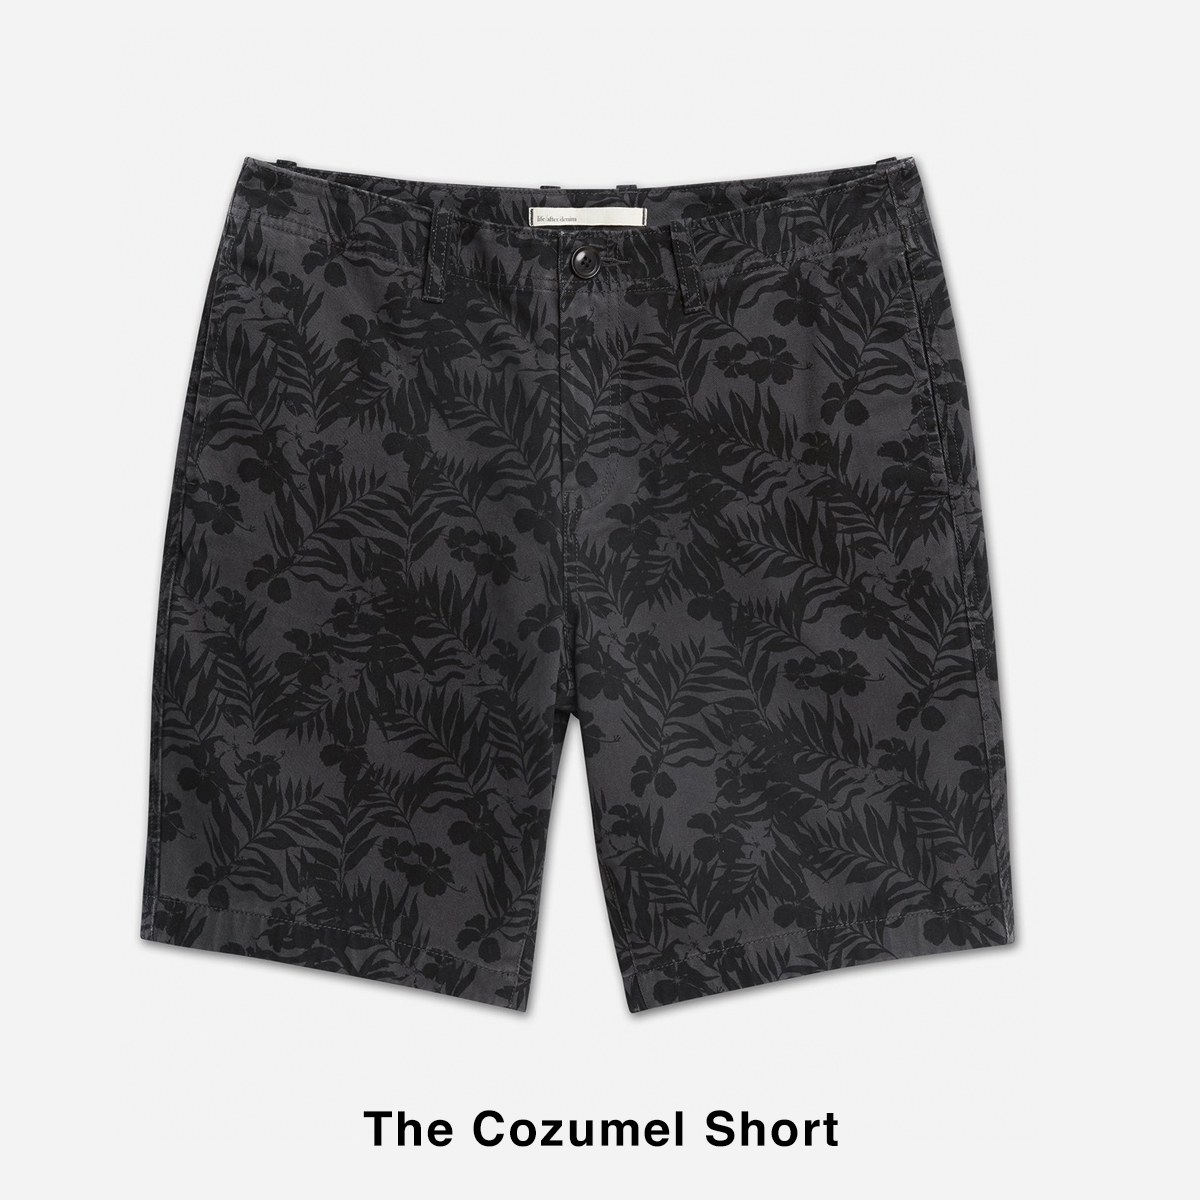 The Cozumel Short